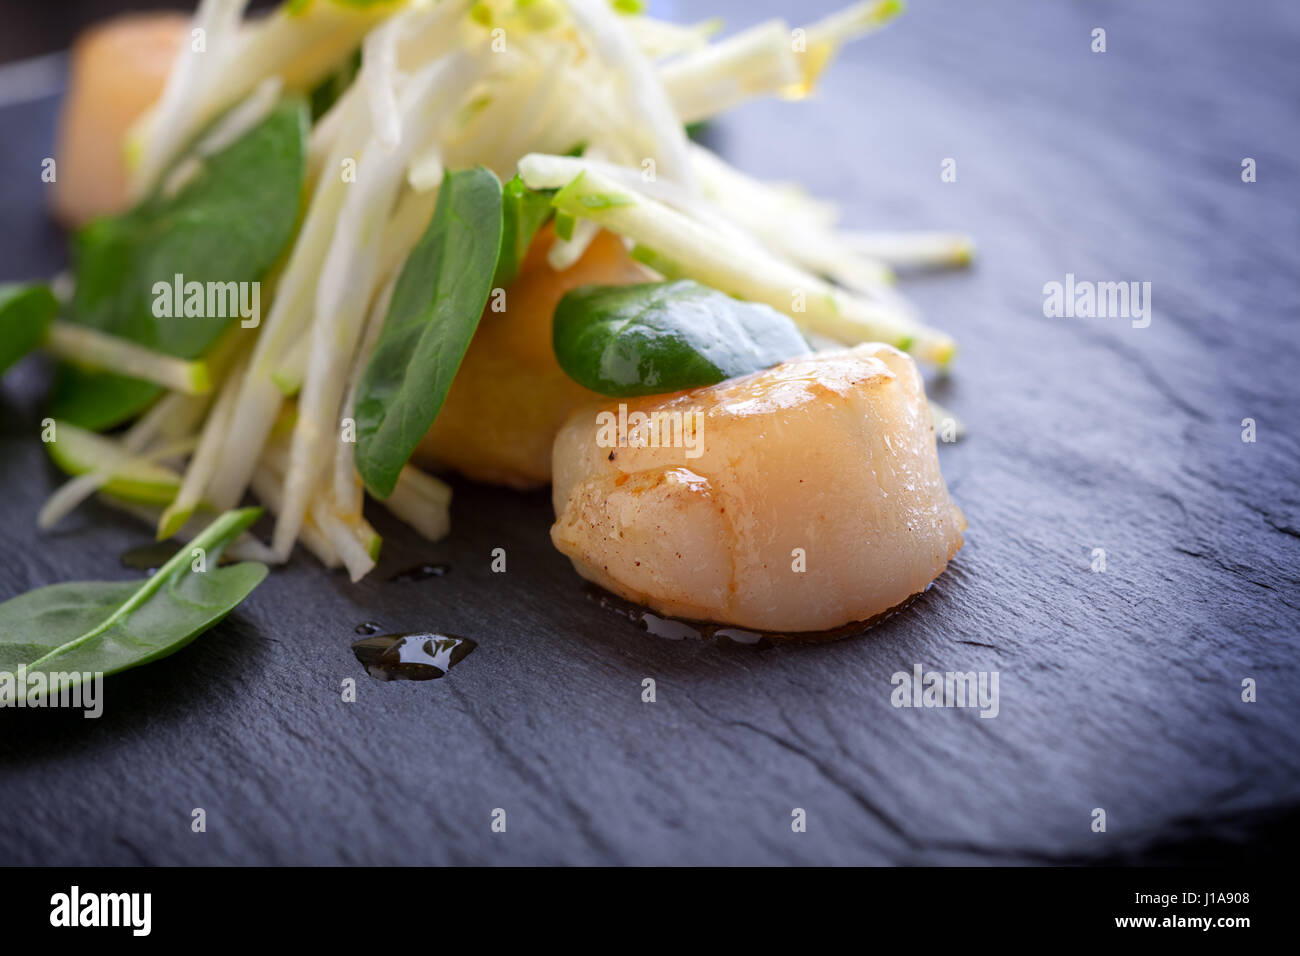 Scallop salad with apple, spinach on a stone plate. - Stock Image